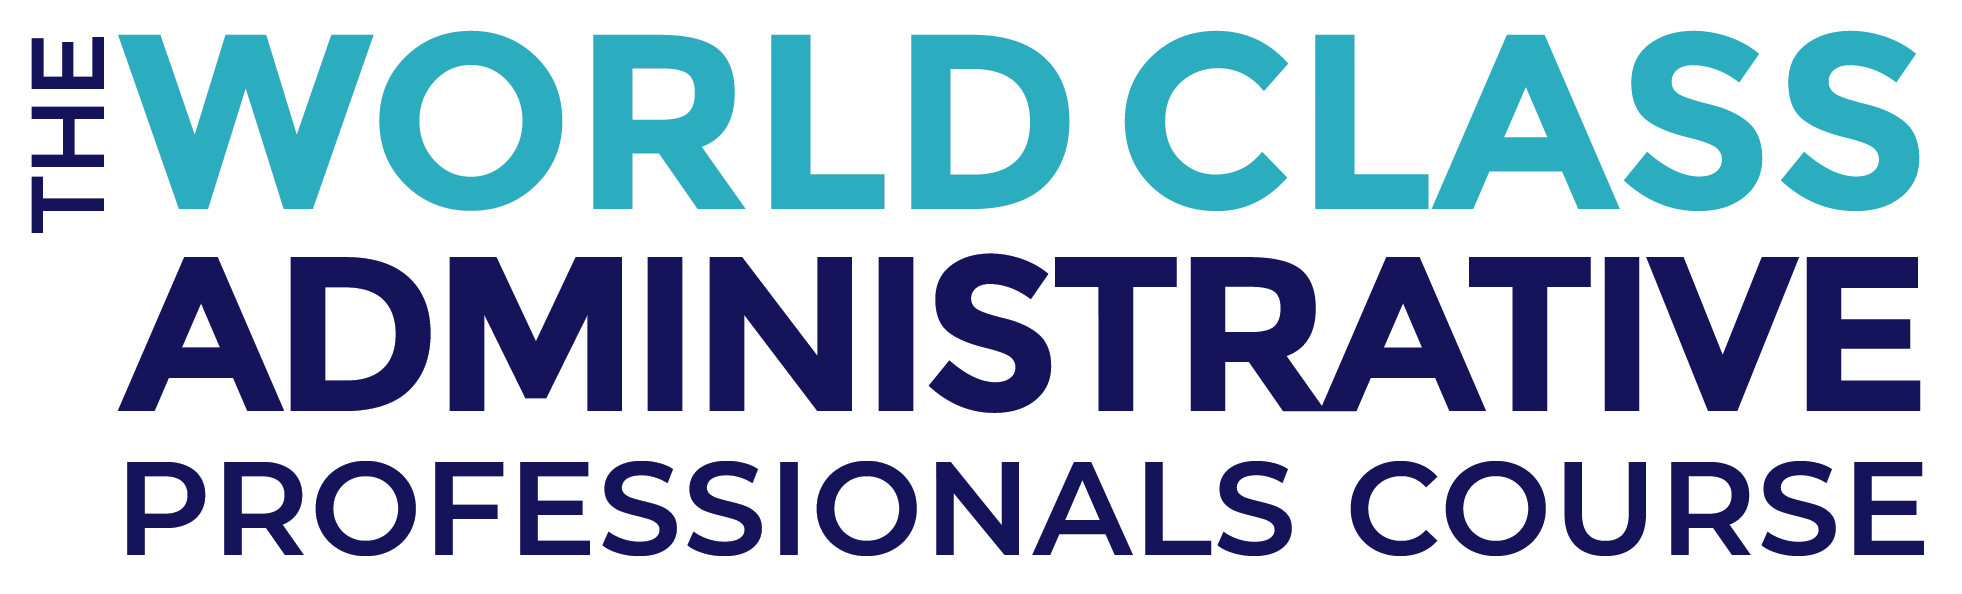 The World Class Administrative Professional Course